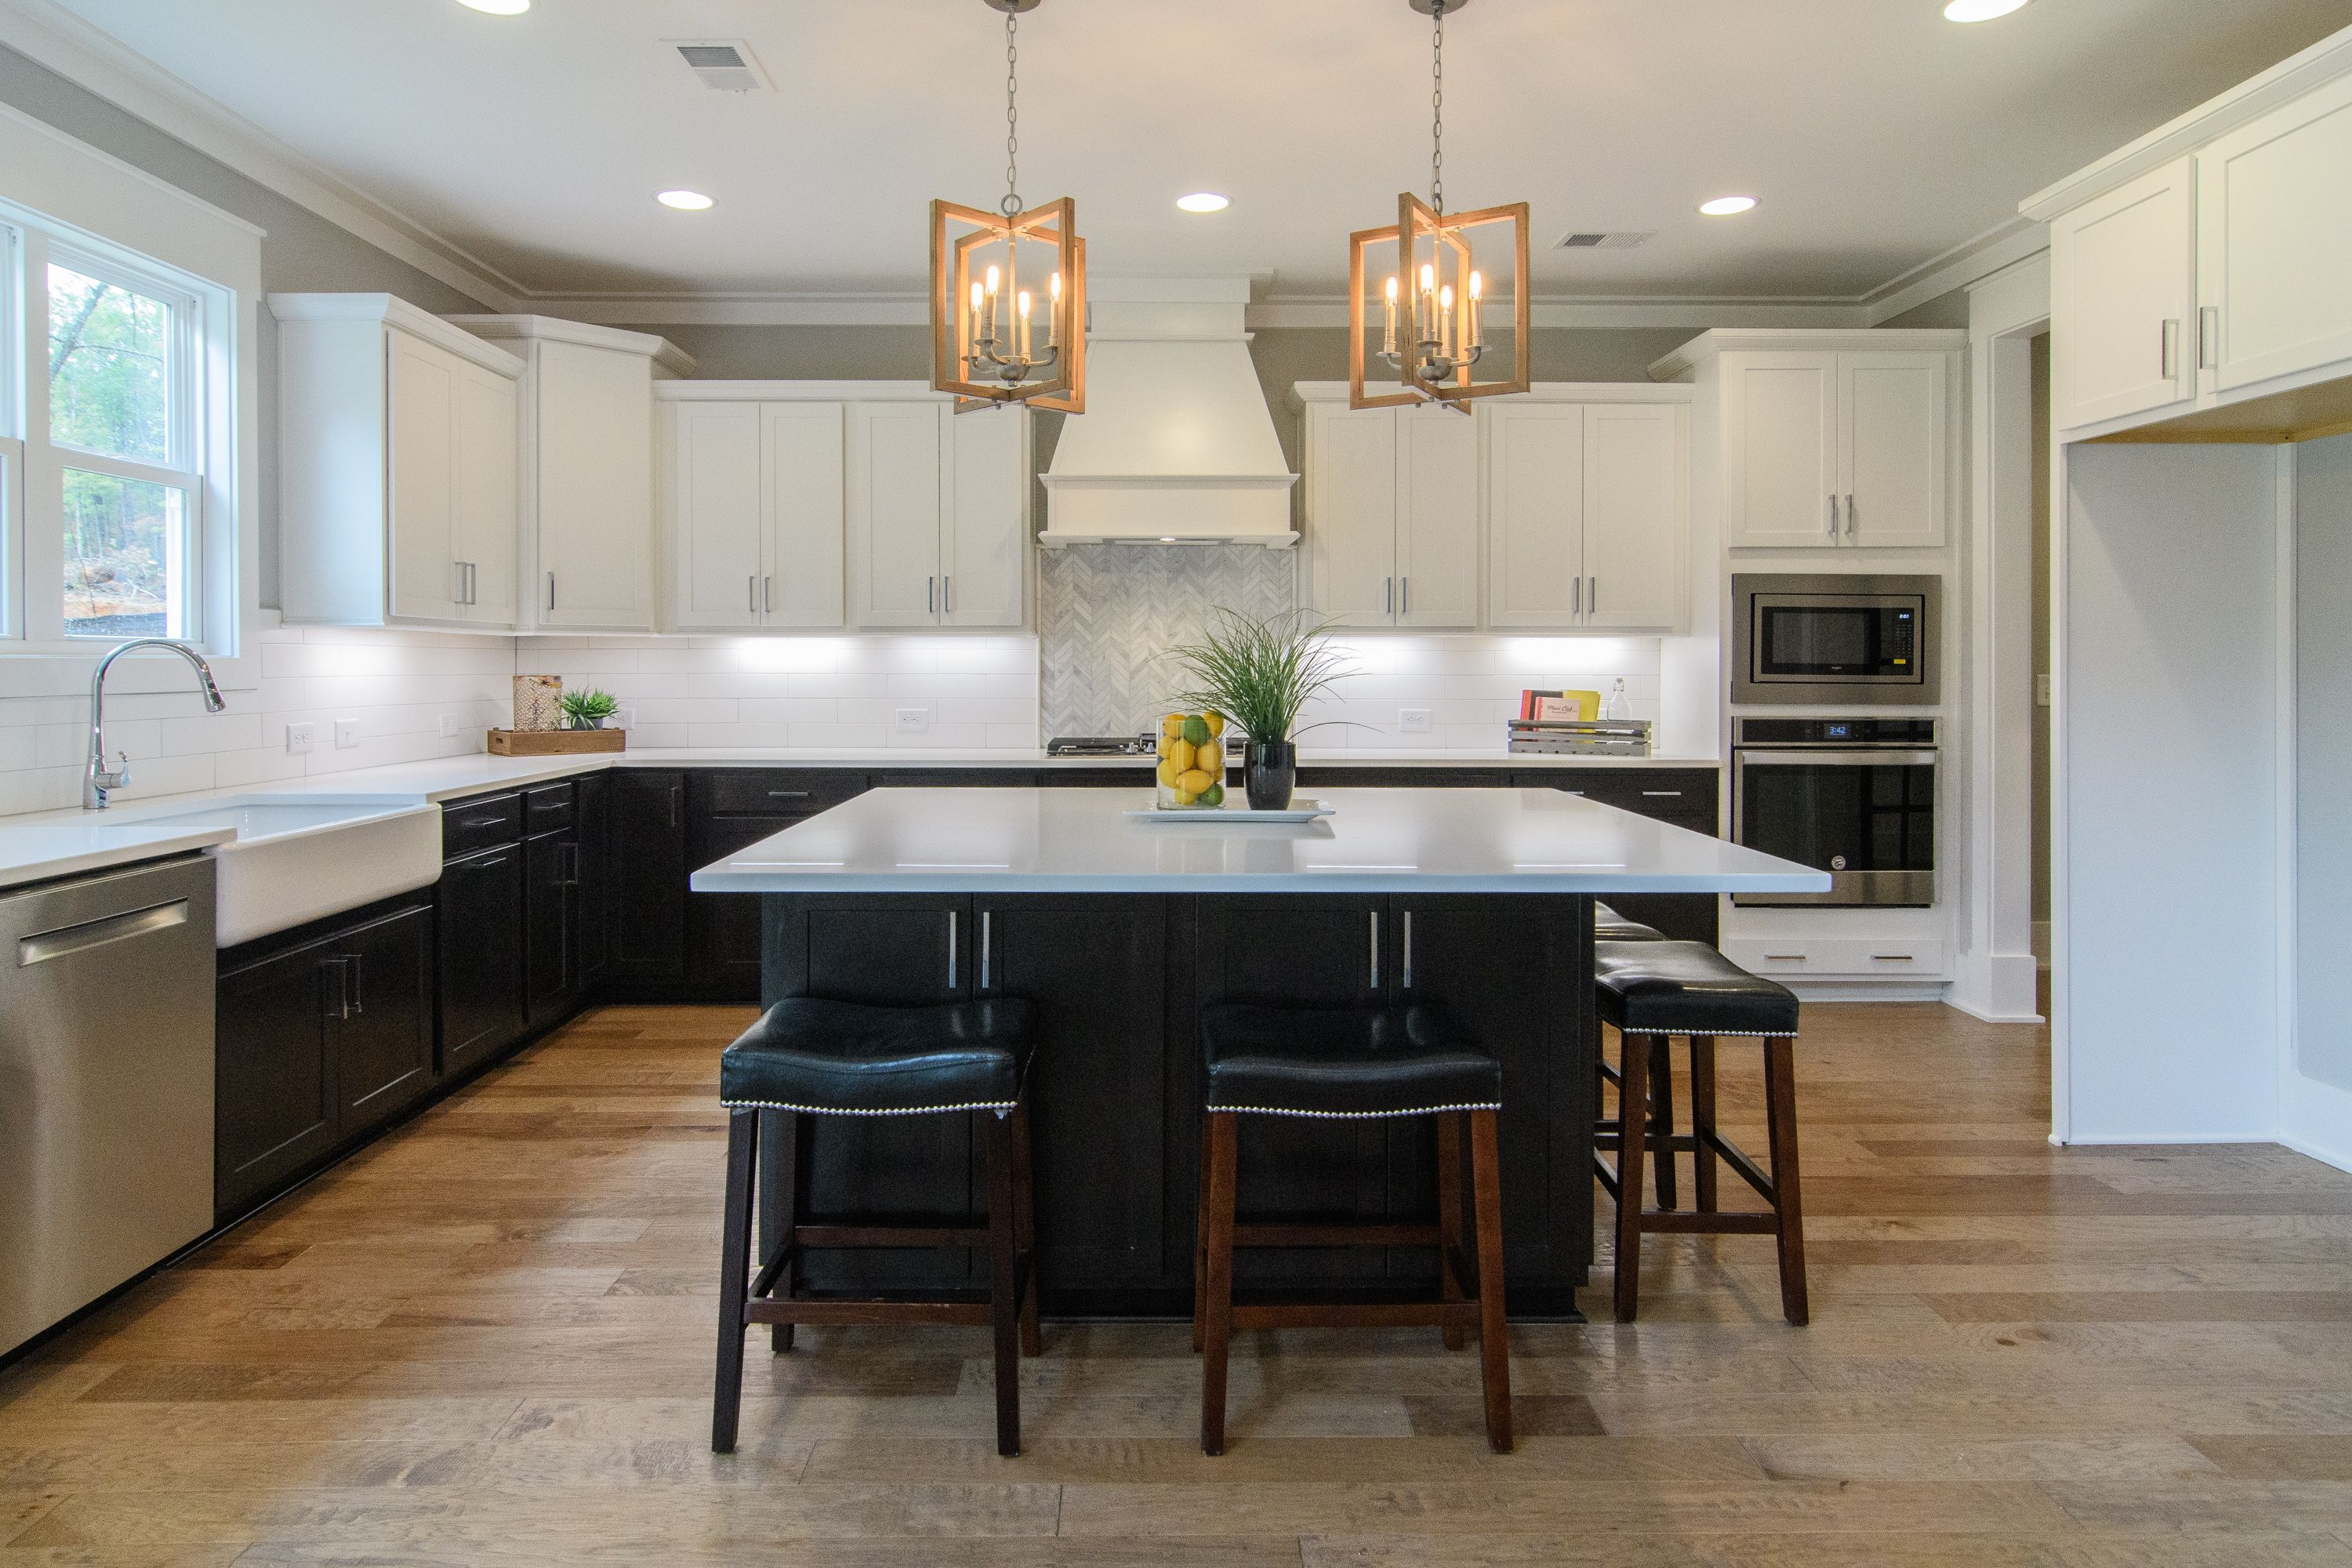 Paint - SW 0055 Light French Grey Cabinets Lower - Benton ...